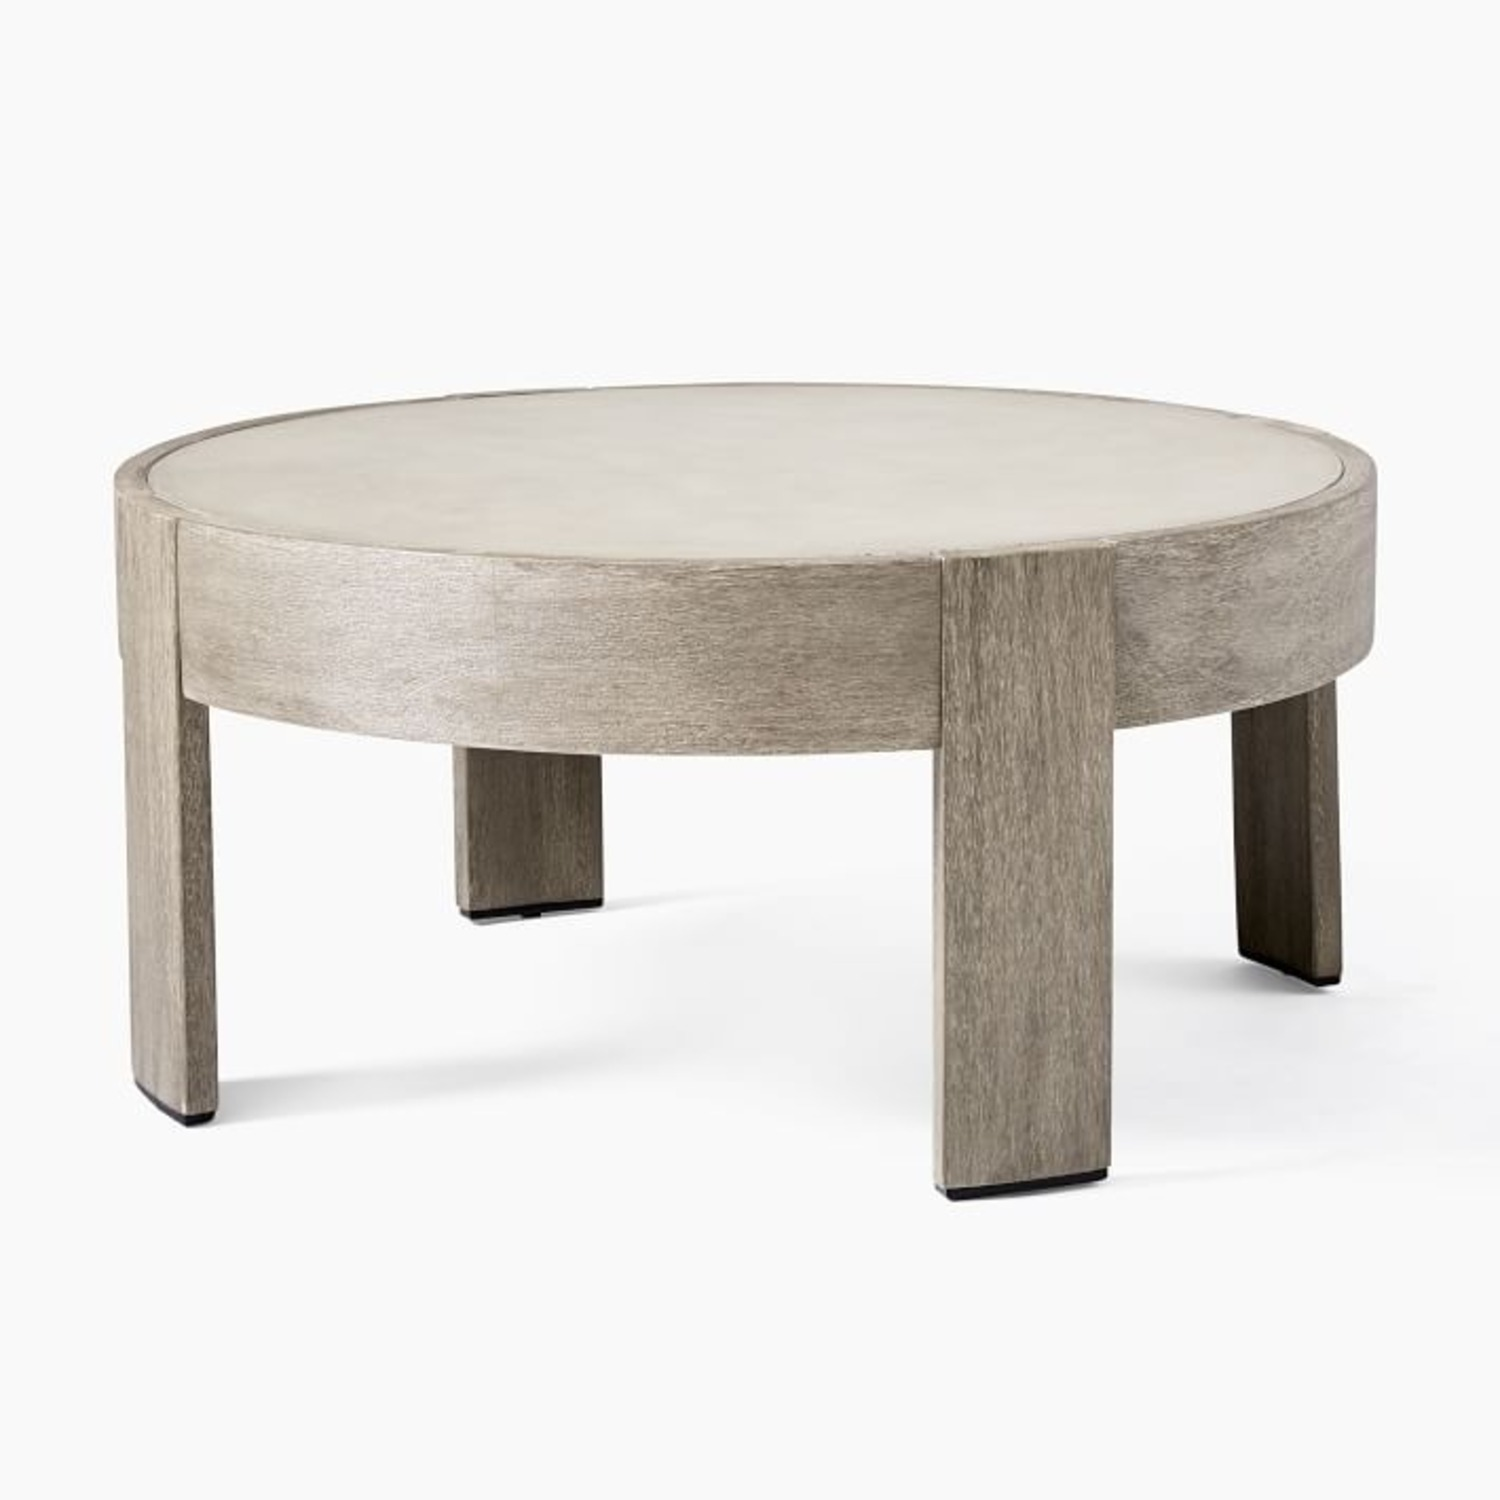 West Elm Portside Outdoor Concrete Coffee Table - image-1